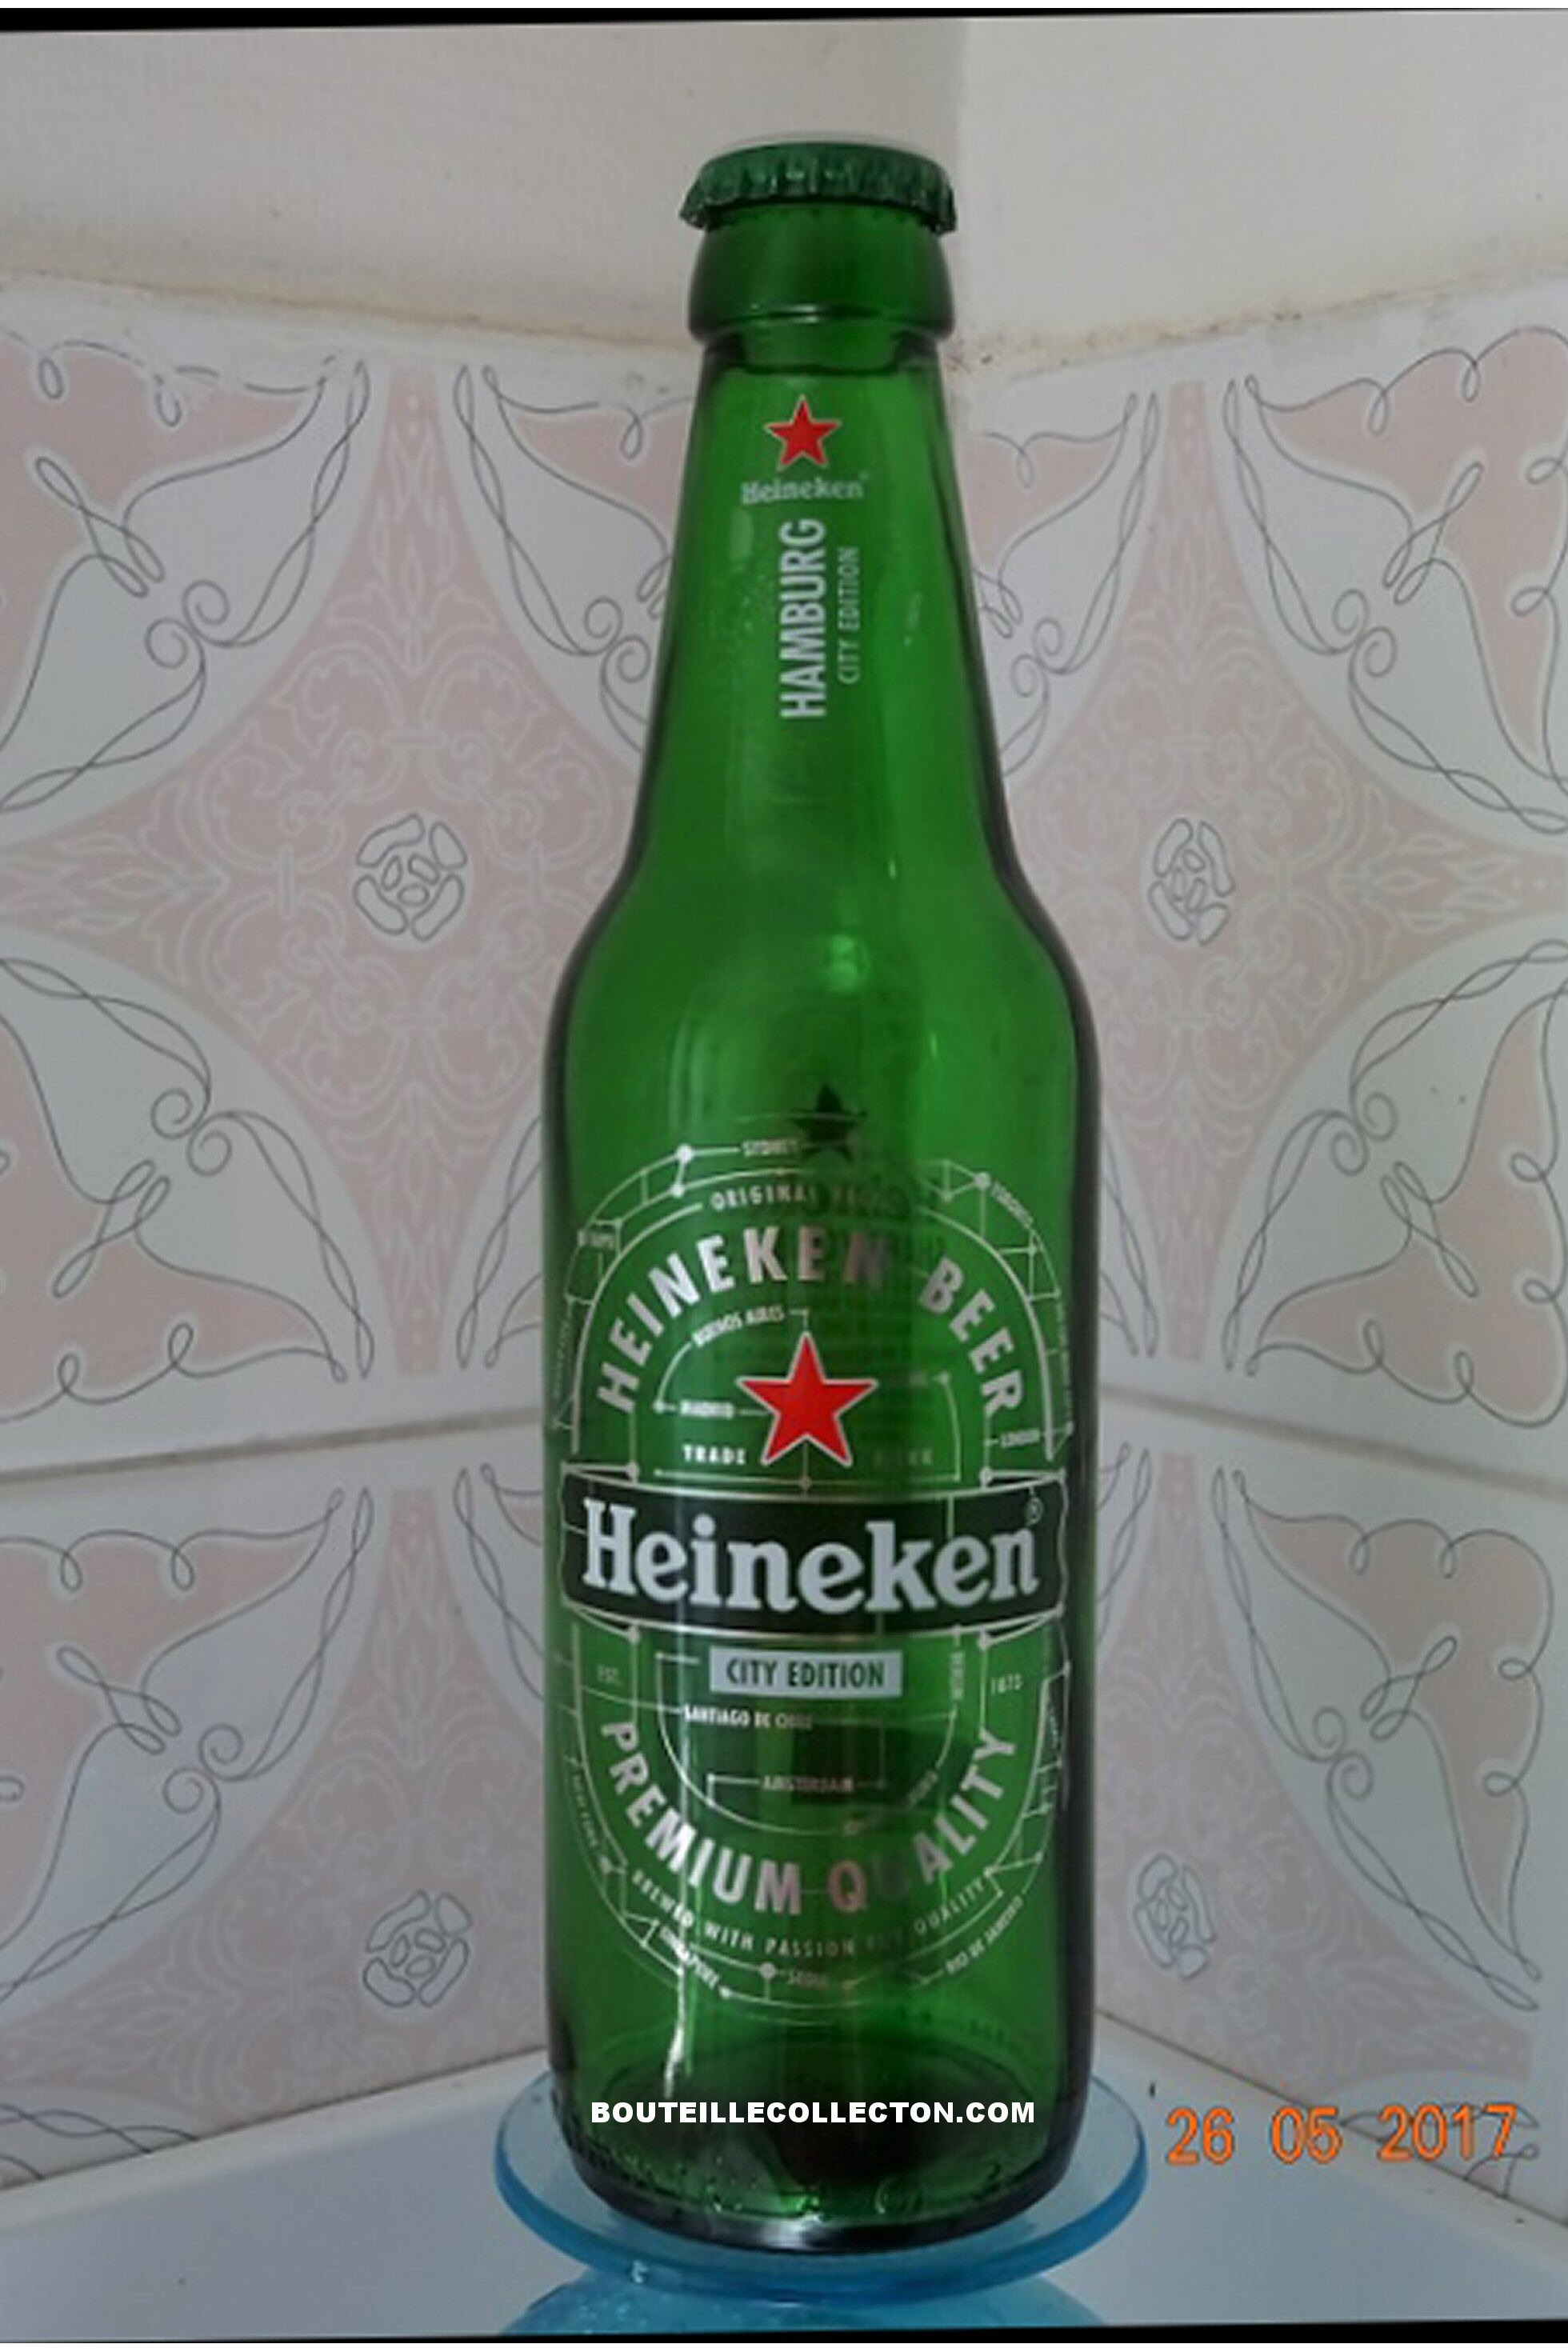 A HEINEKEN CITY EDITION HAMBURG 2016 33CL B OK.jpg